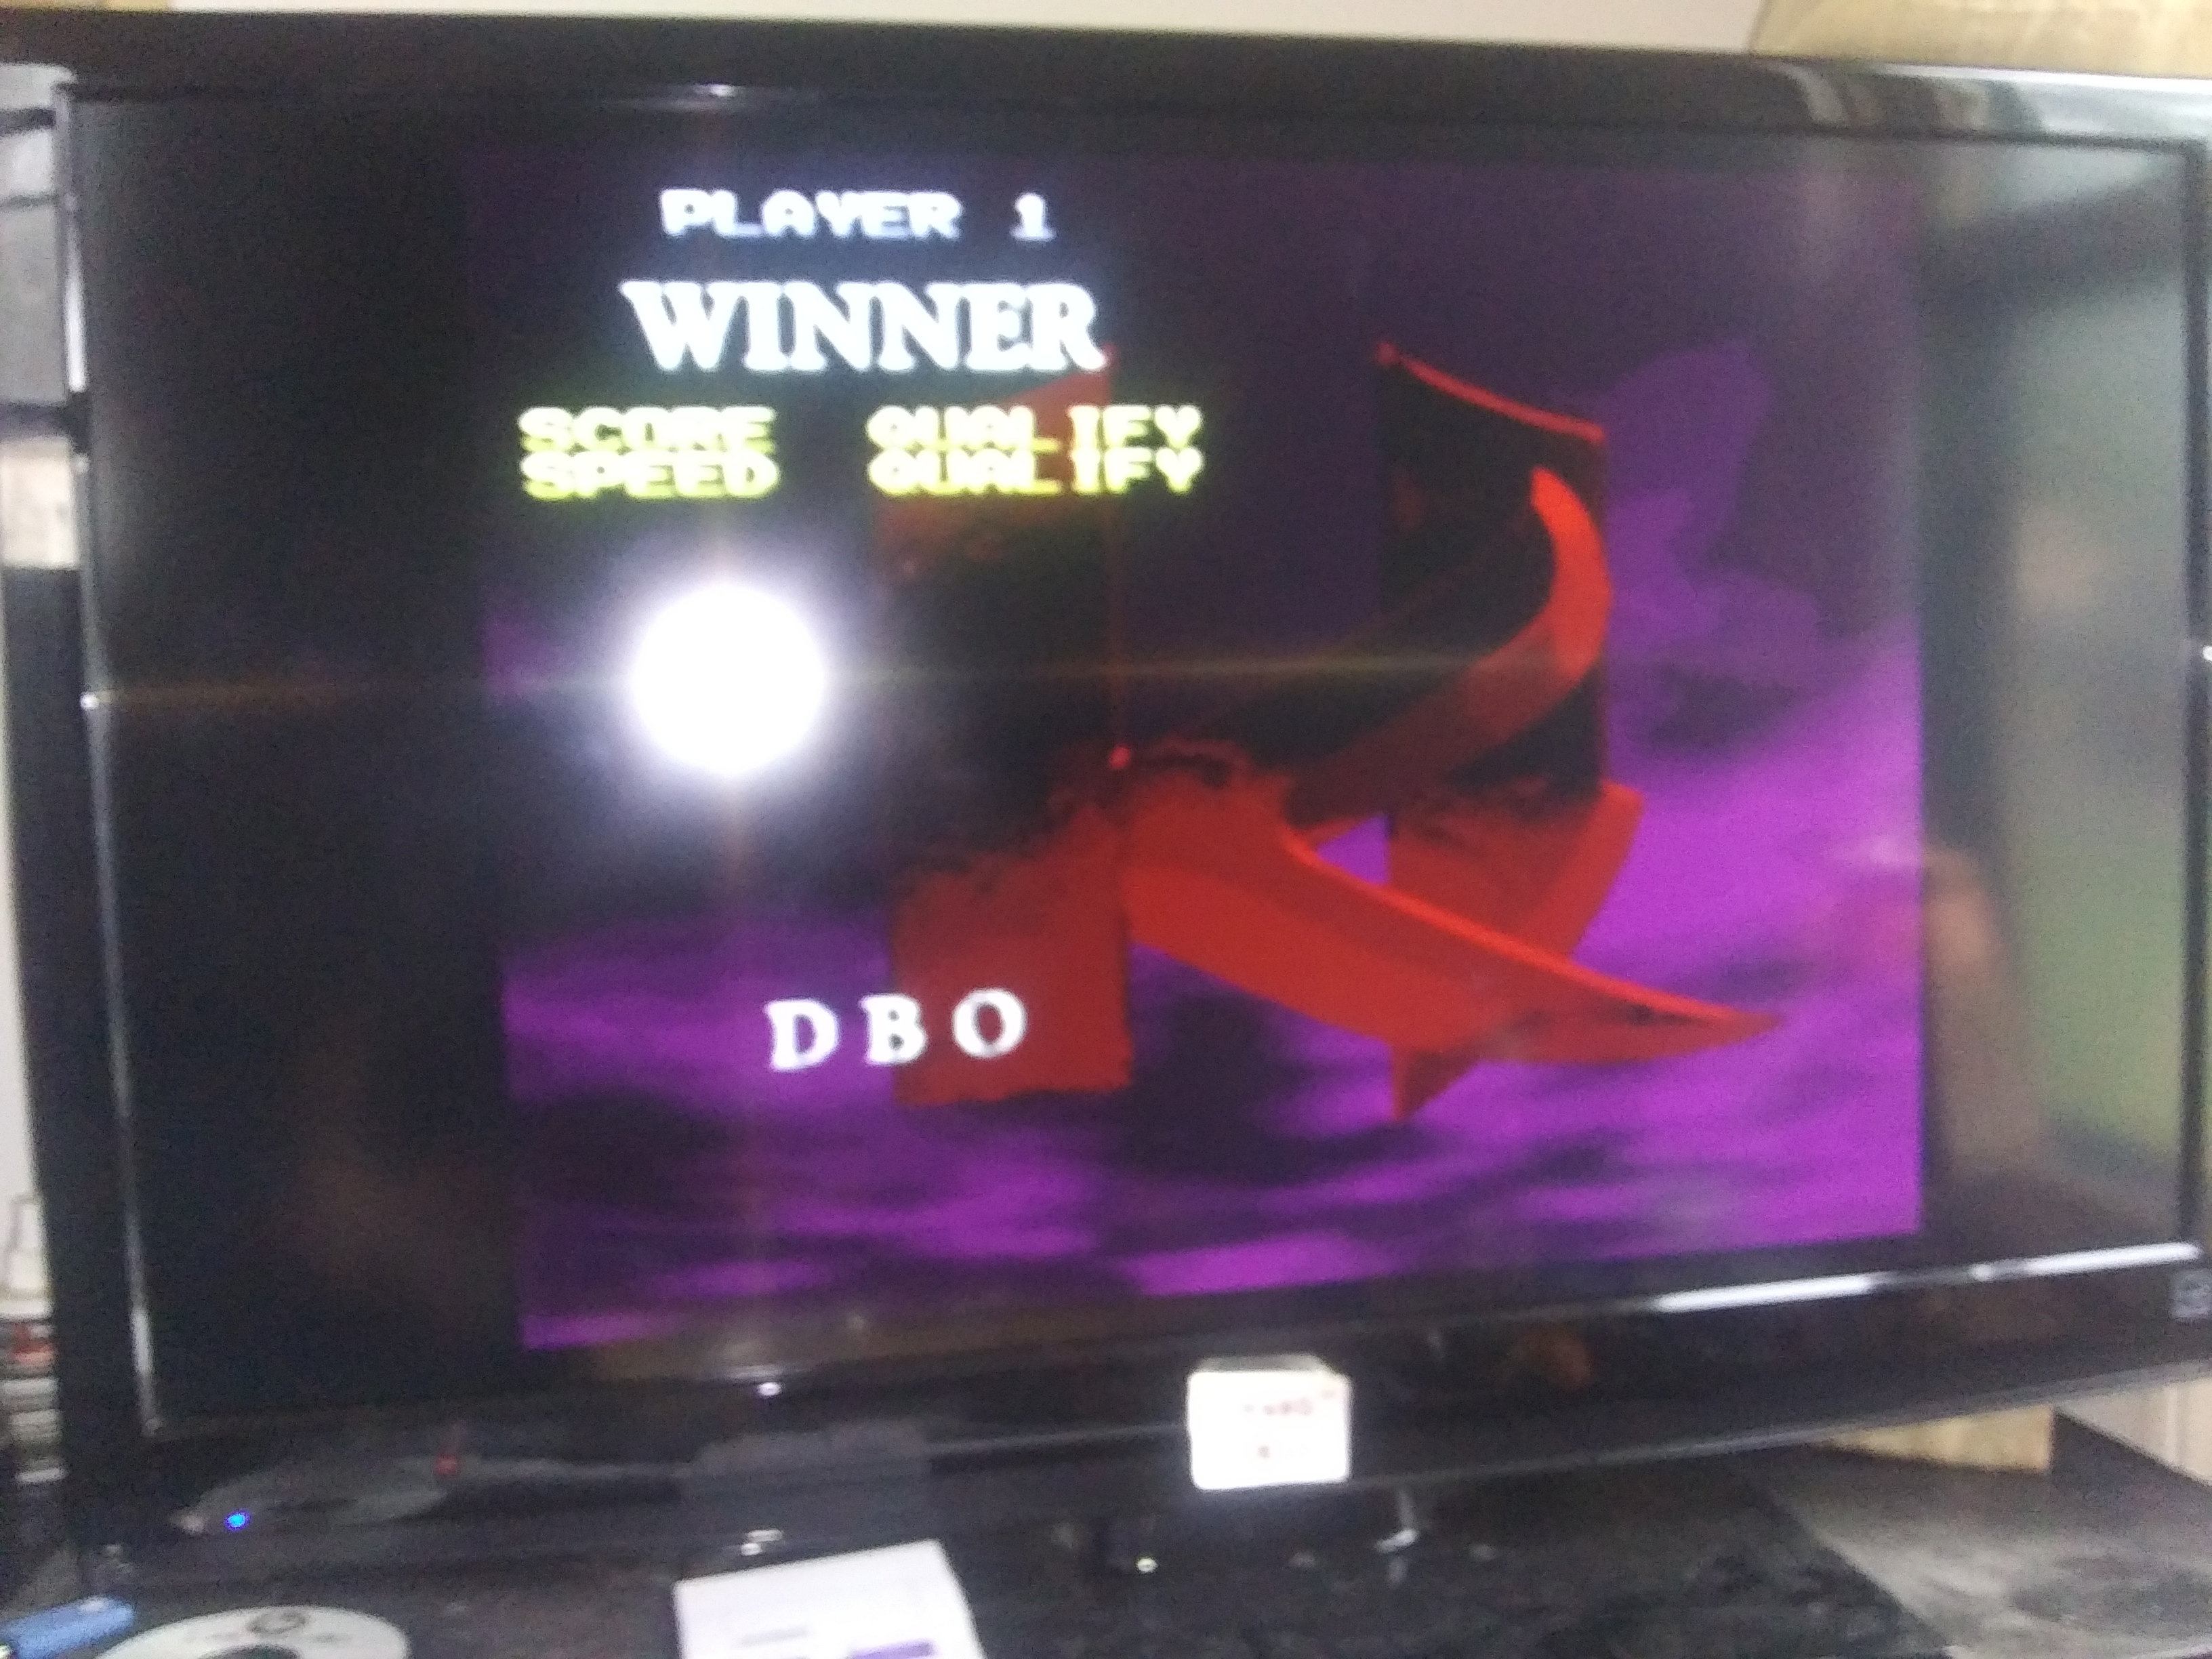 Deebo: Killer Instinct [Highest Stage Score] (SNES/Super Famicom Emulated) 119,160 points on 2019-07-16 20:17:32